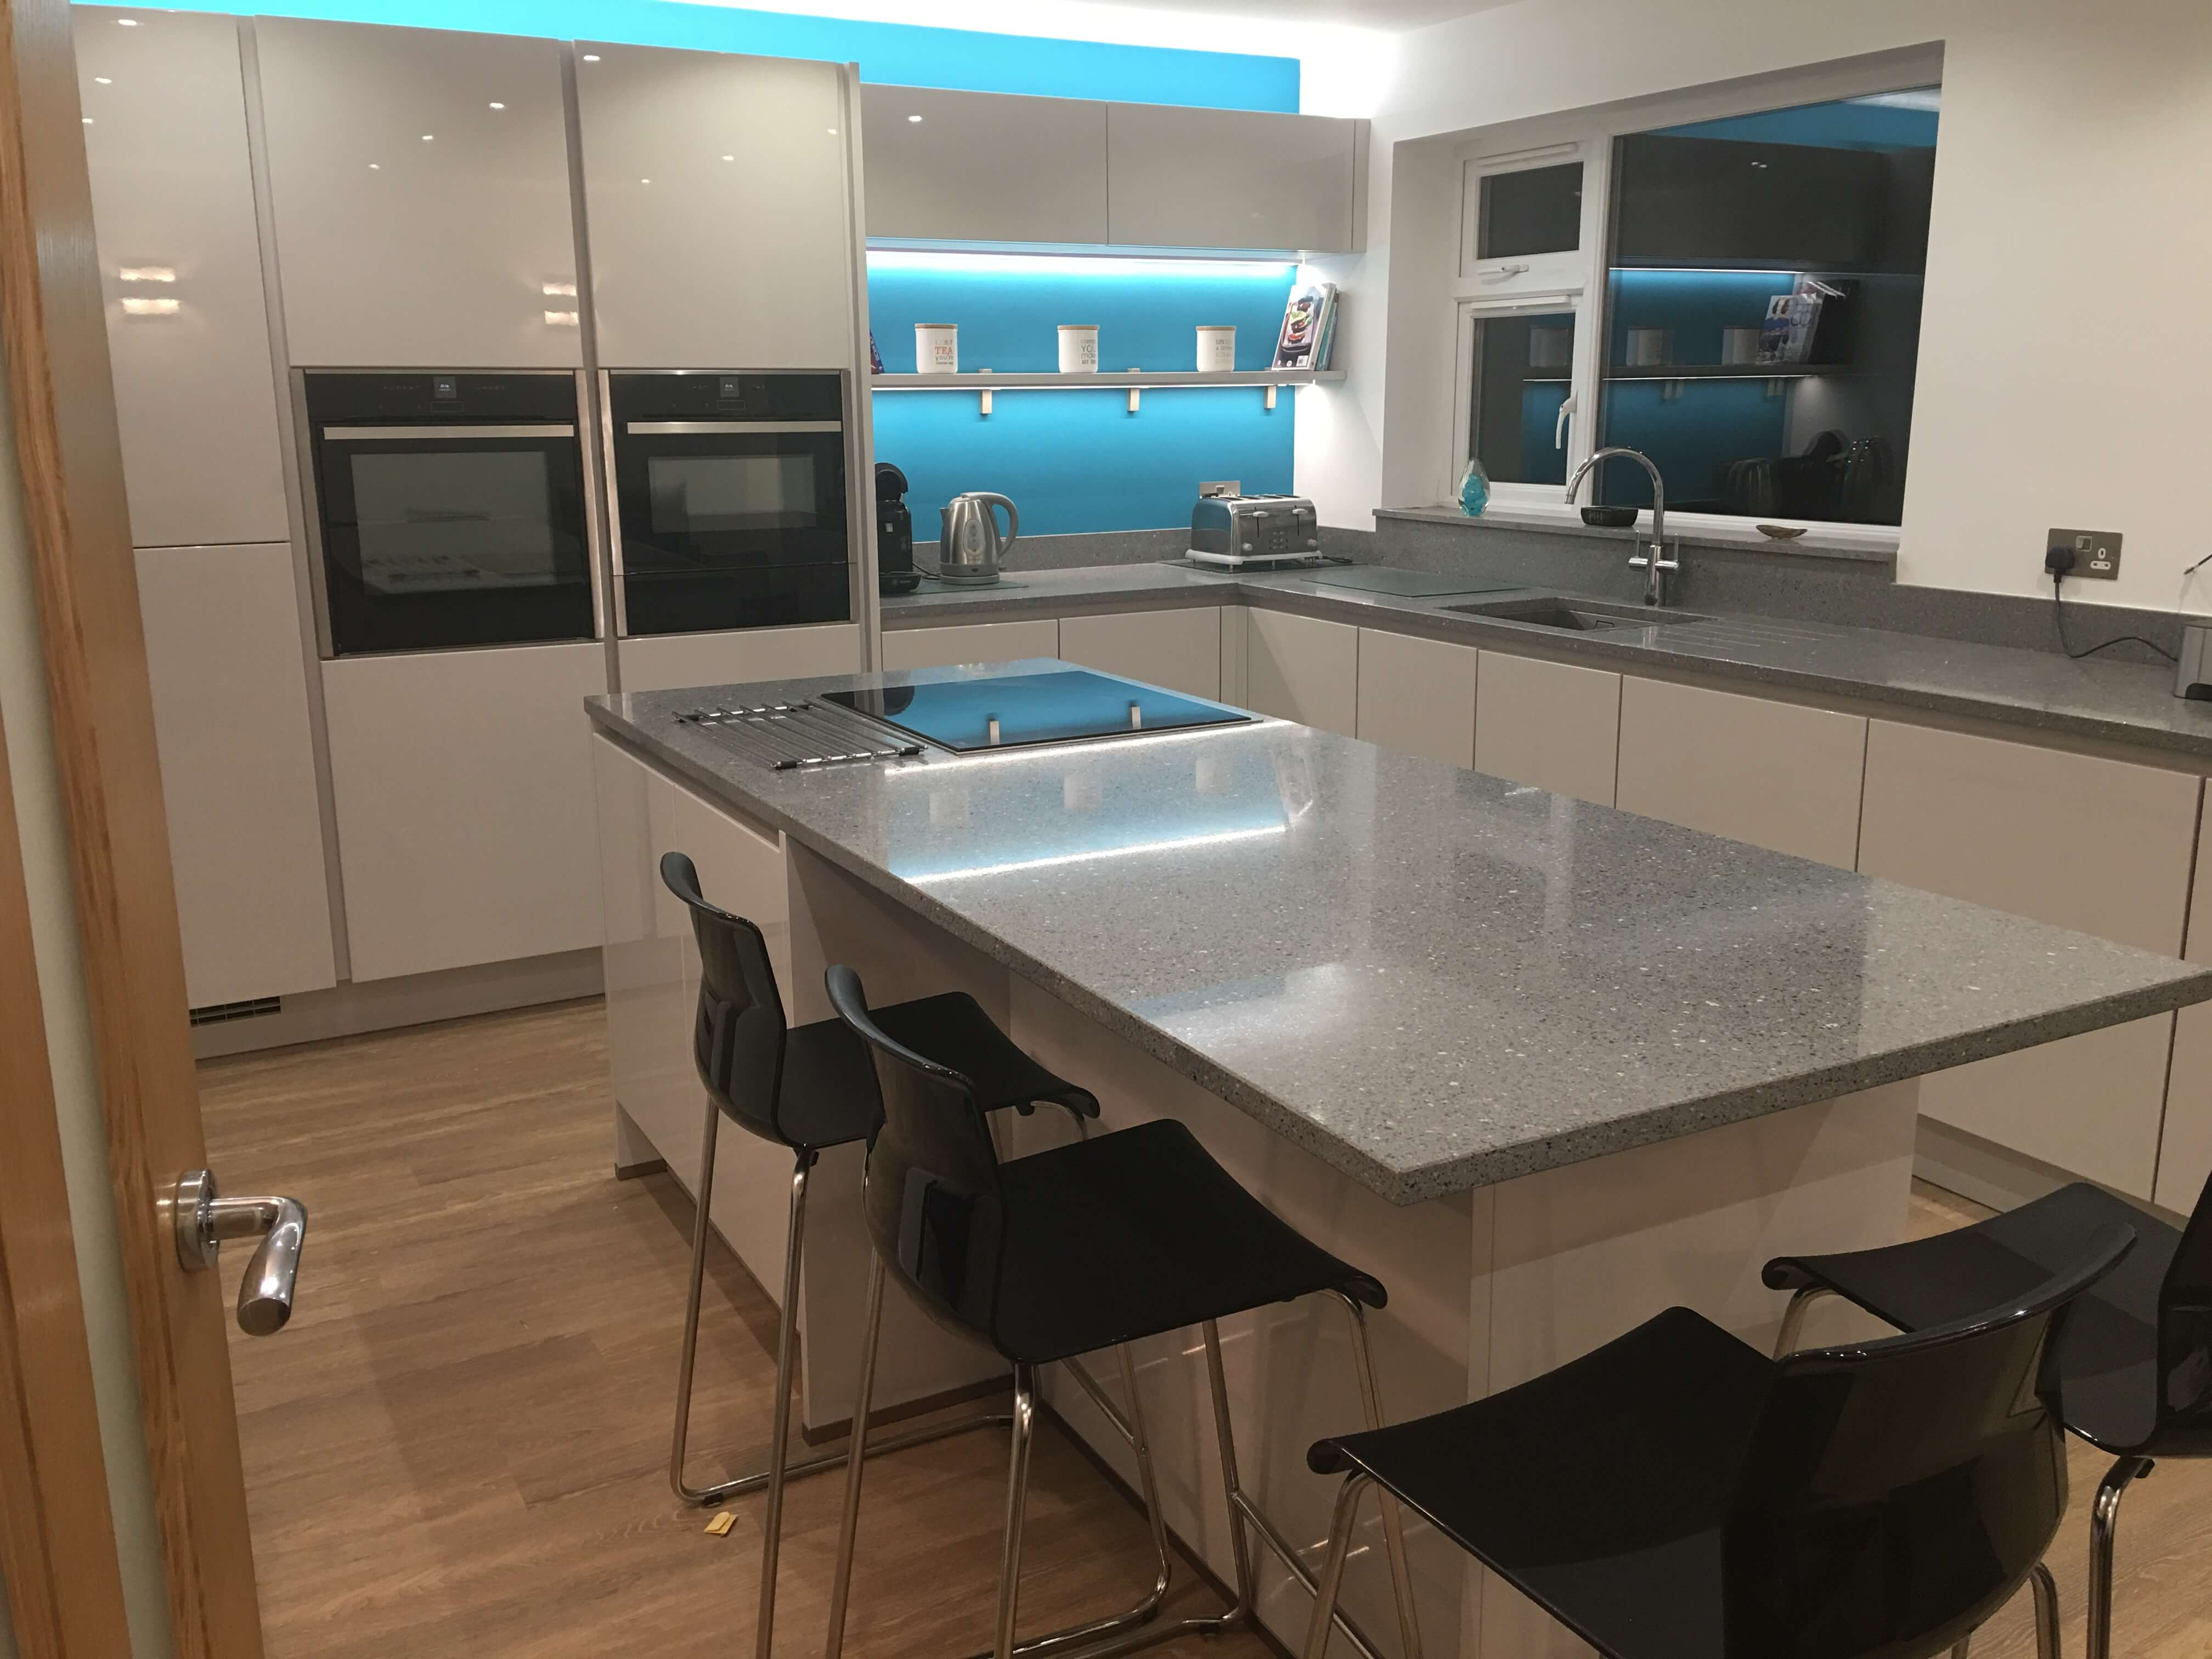 Another example of one of our kitchens